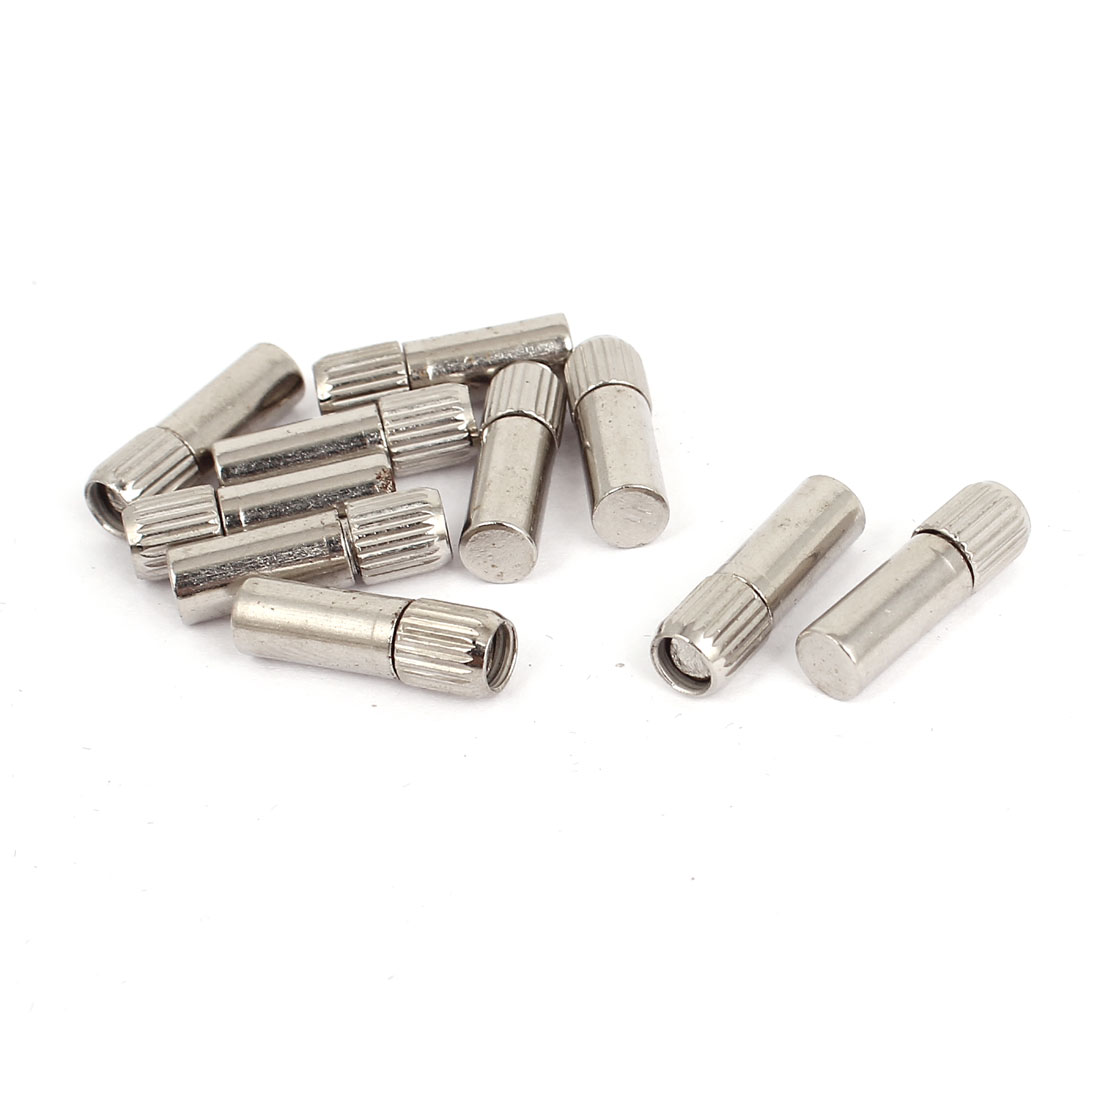 6mm x 20mm Furniture Cabinet Straight Shelf Supports Pegs Pins 10 Pcs